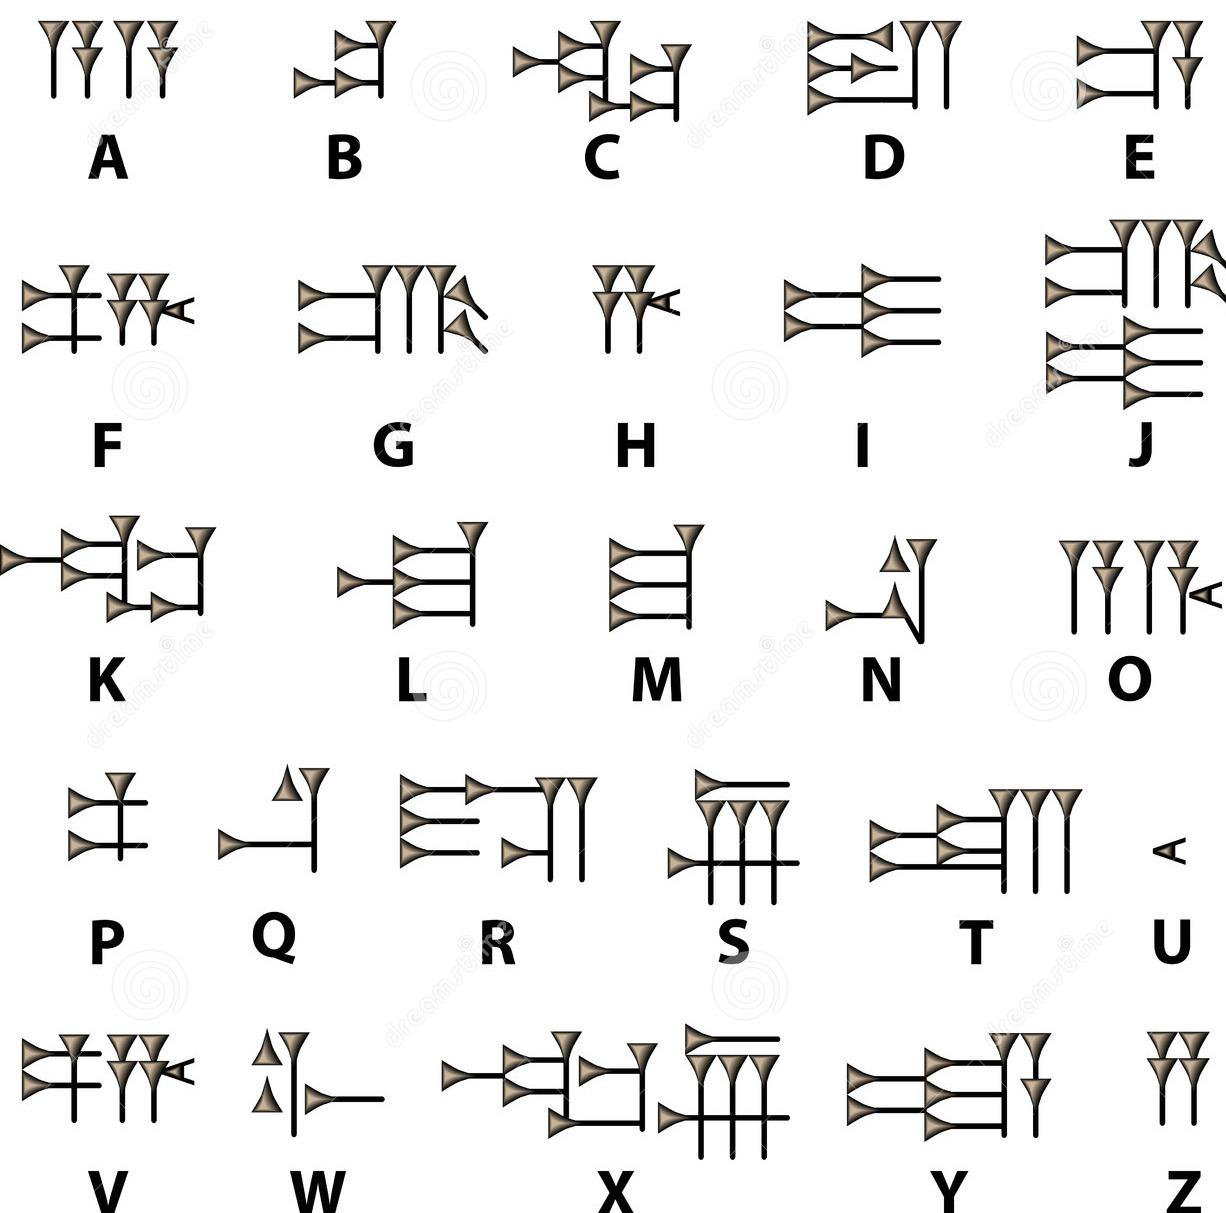 Cuneiform Activity Worksheets